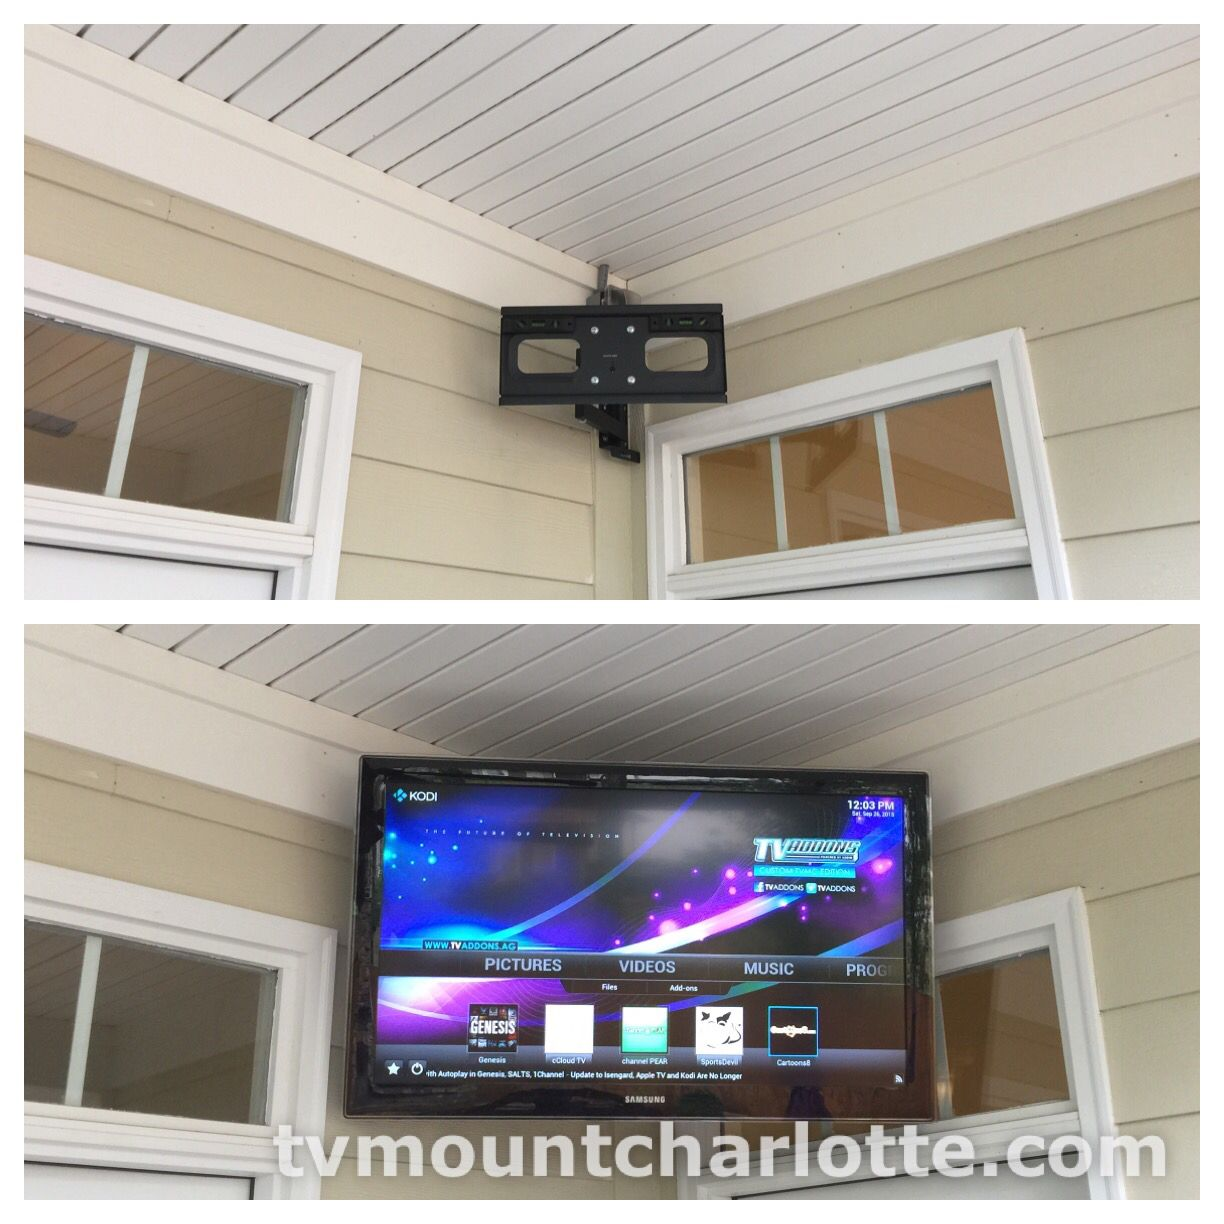 Pin On Tv Wall Mounting Service Charlotte Fireplace Tv Mount Installation Https Www Tvmountcharlotte Com